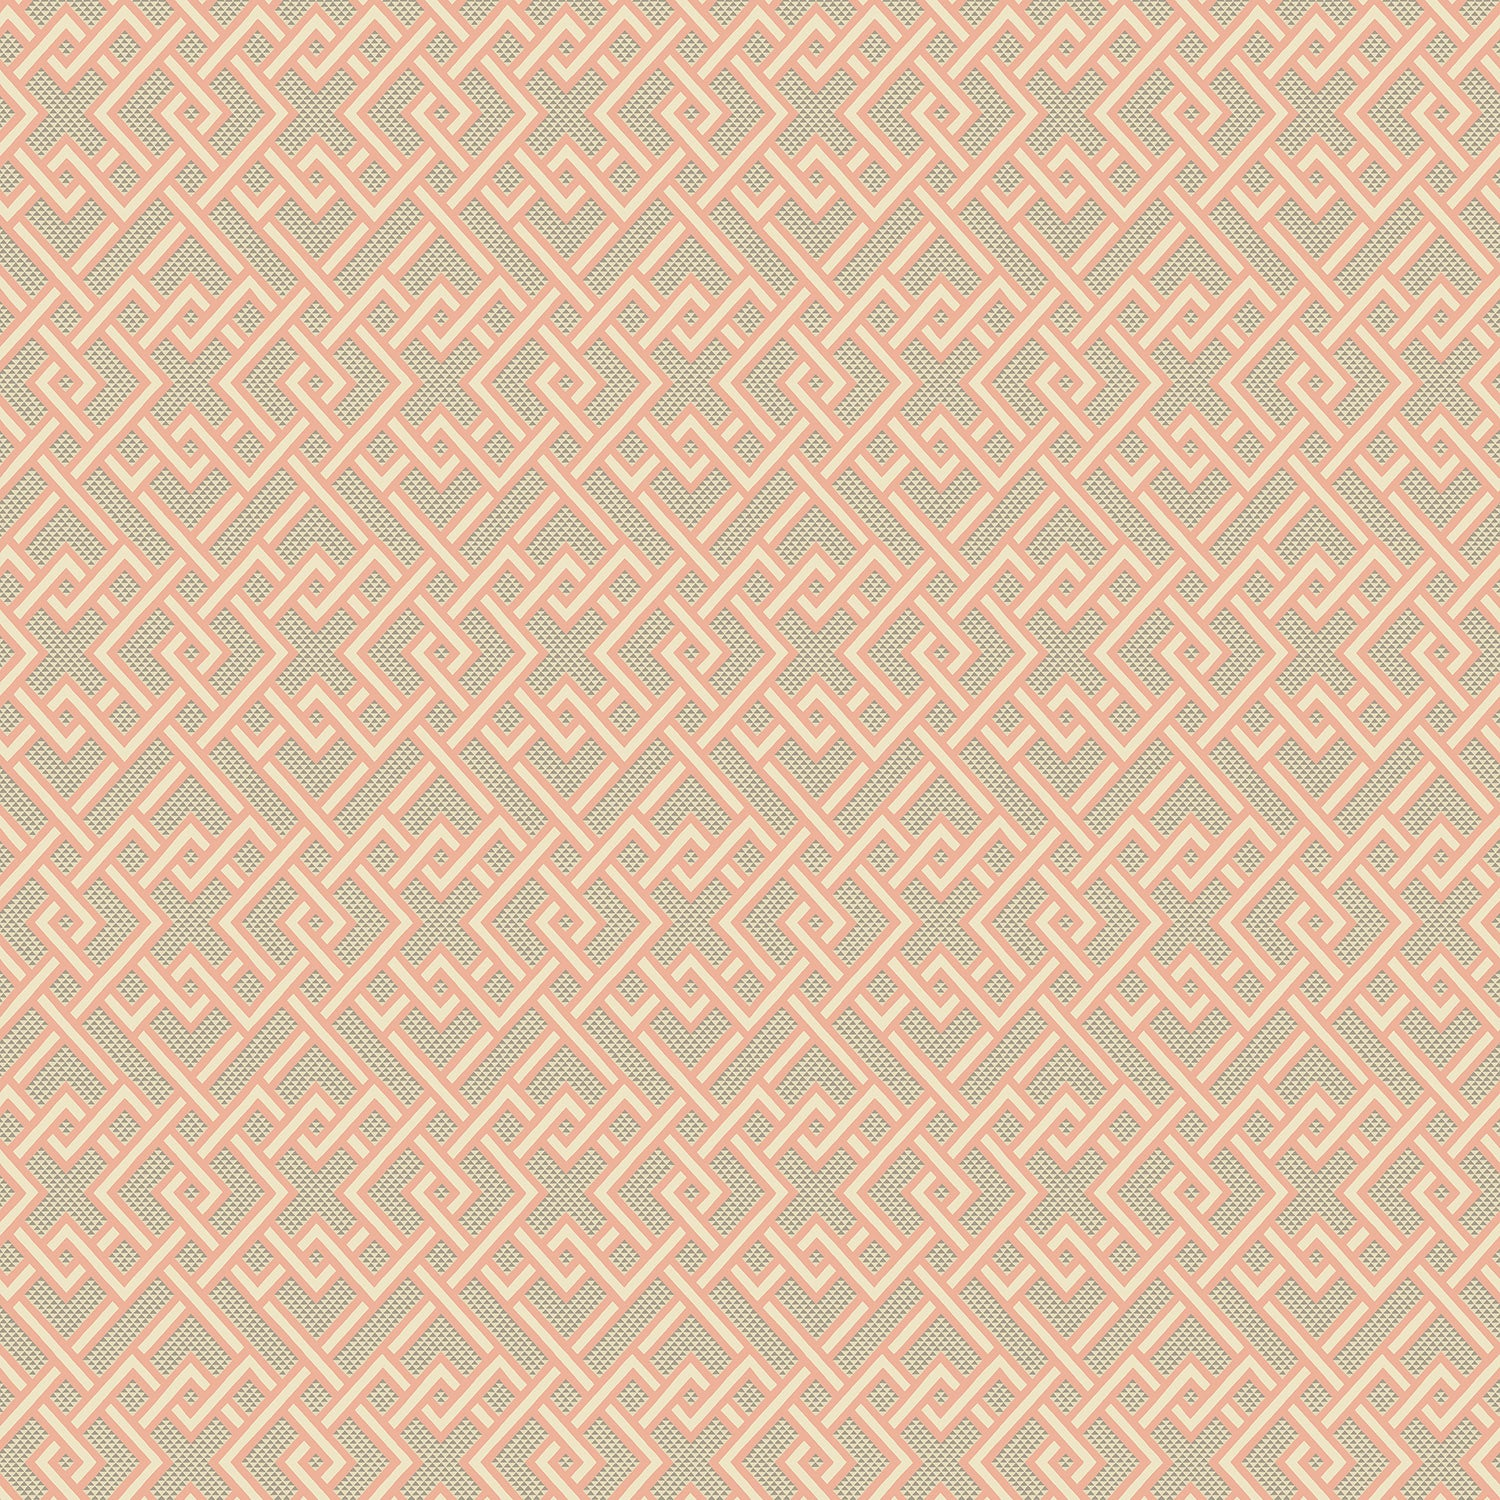 Pink geometric wallpaper for walls, design name Pagoda - colourway Sherbet.